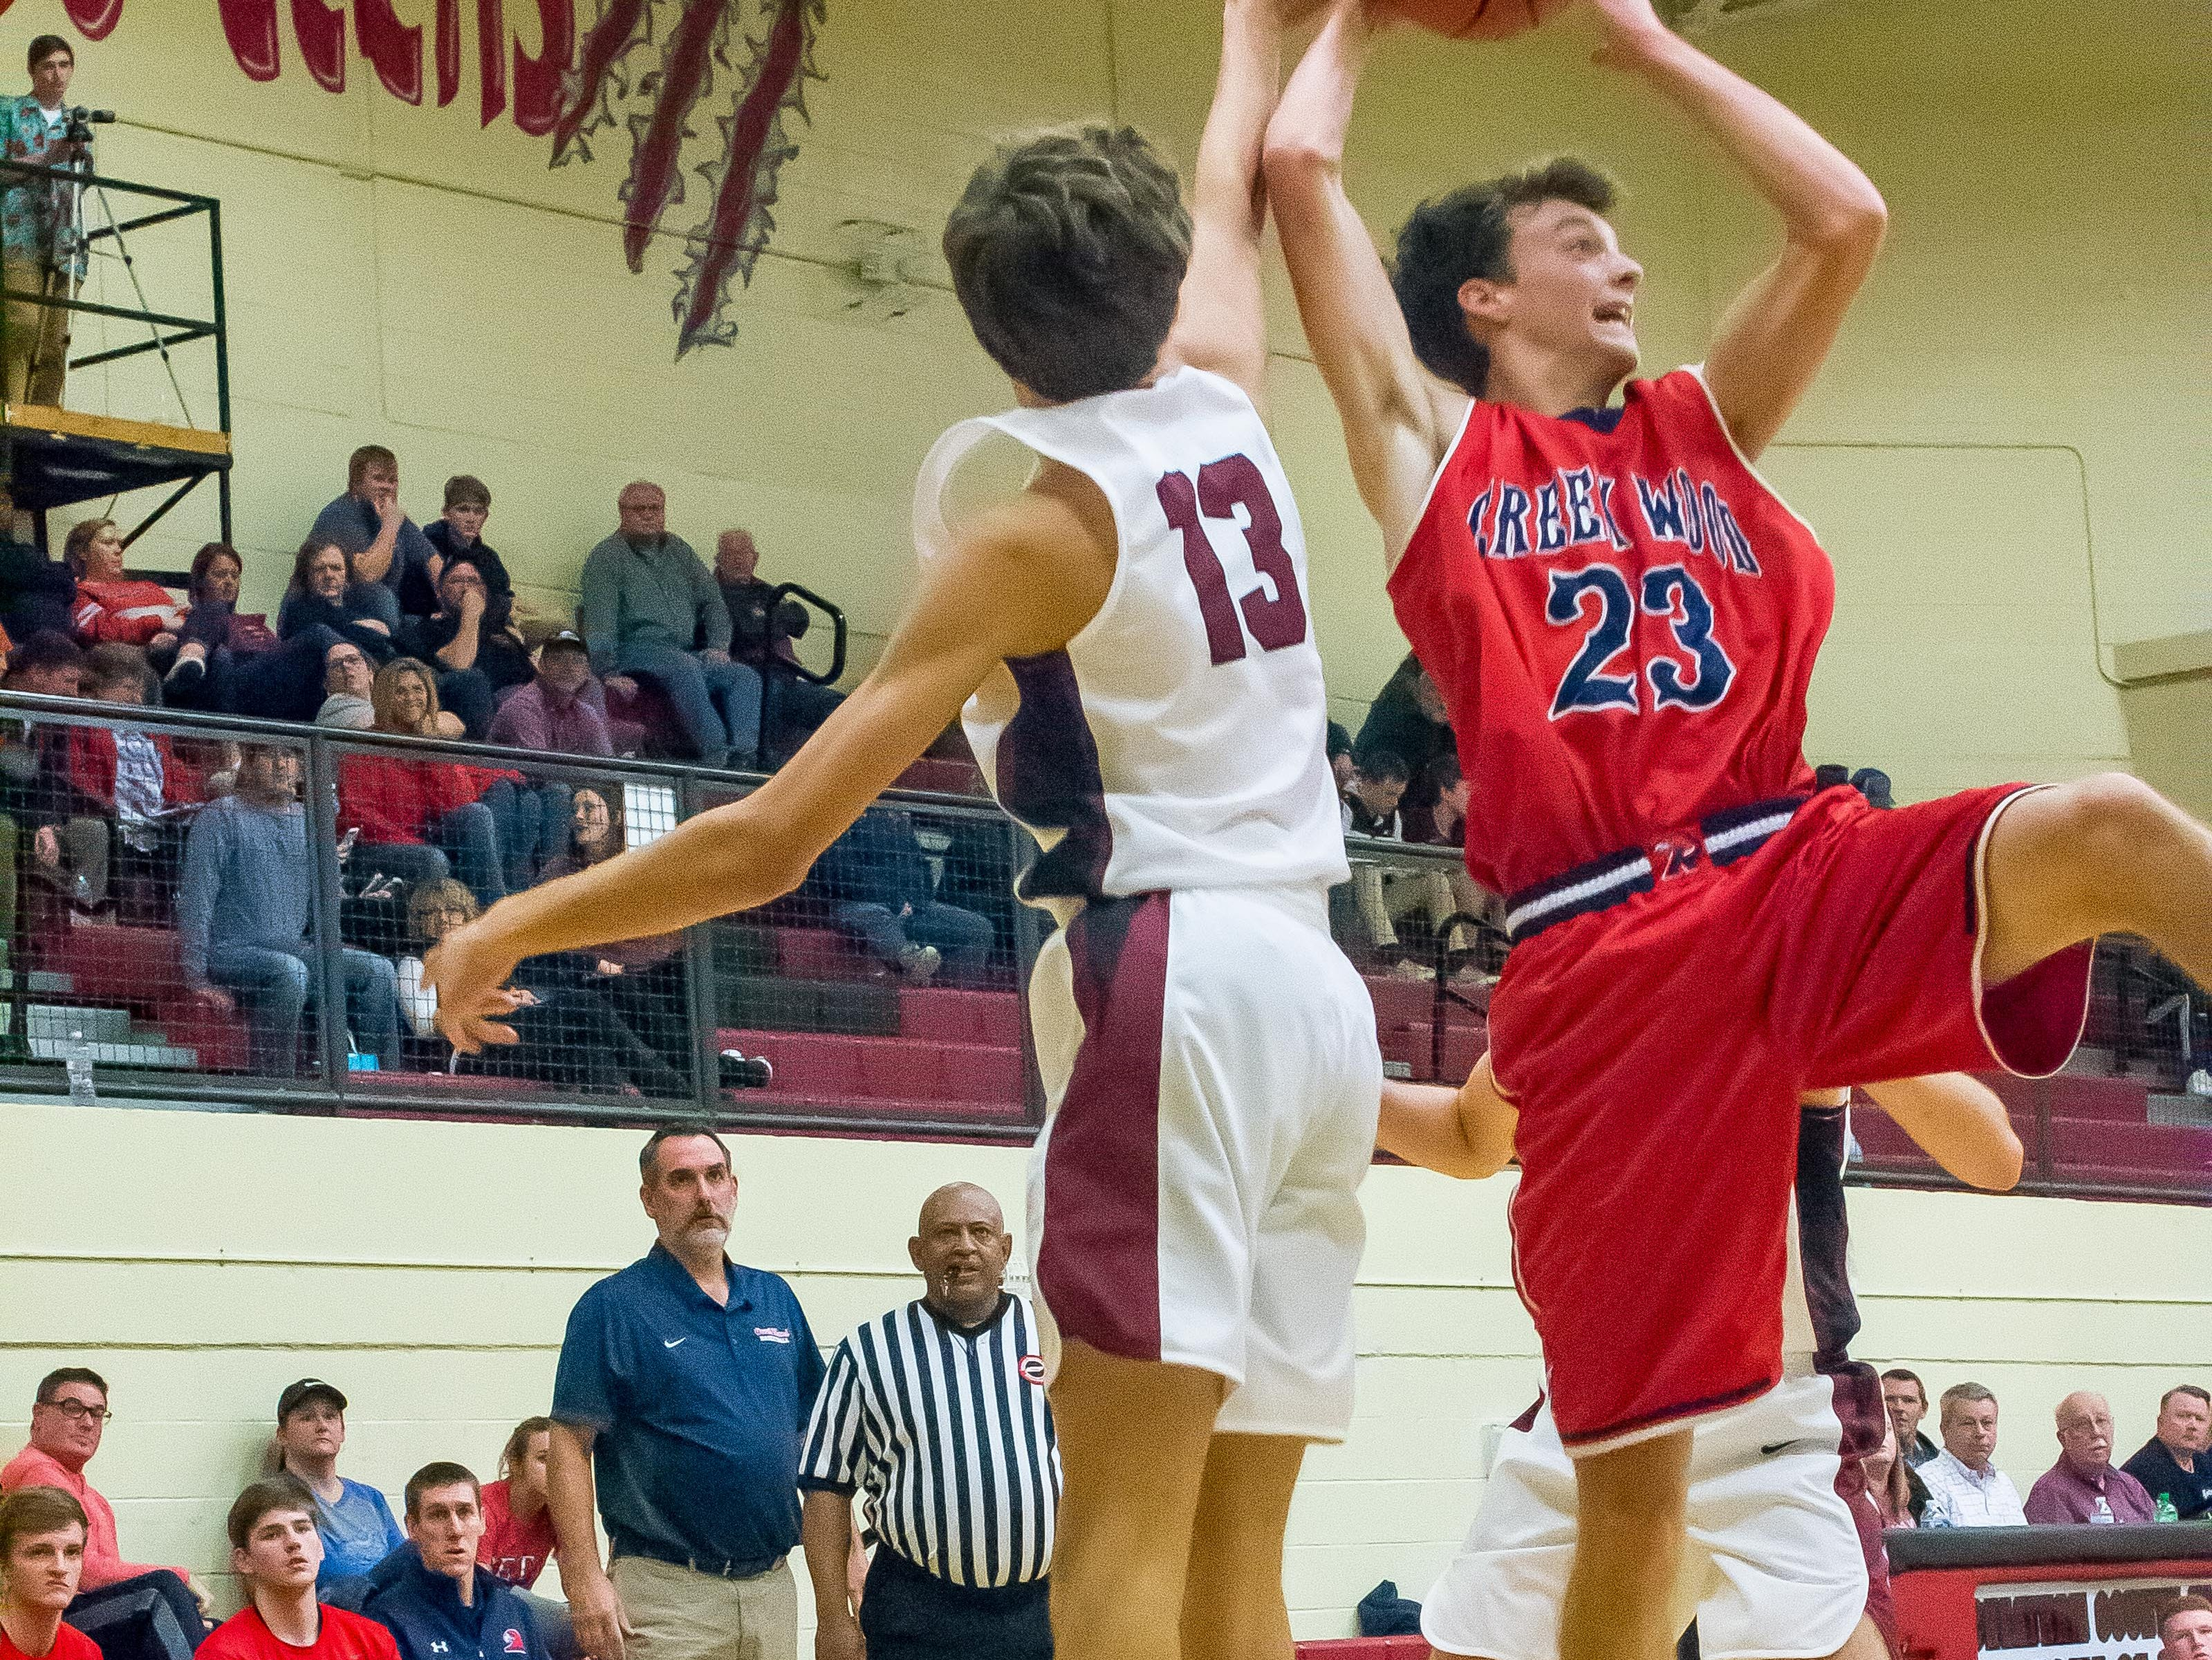 Creek Wood's Tayler Neely grabs a rebound against Cheatham County.